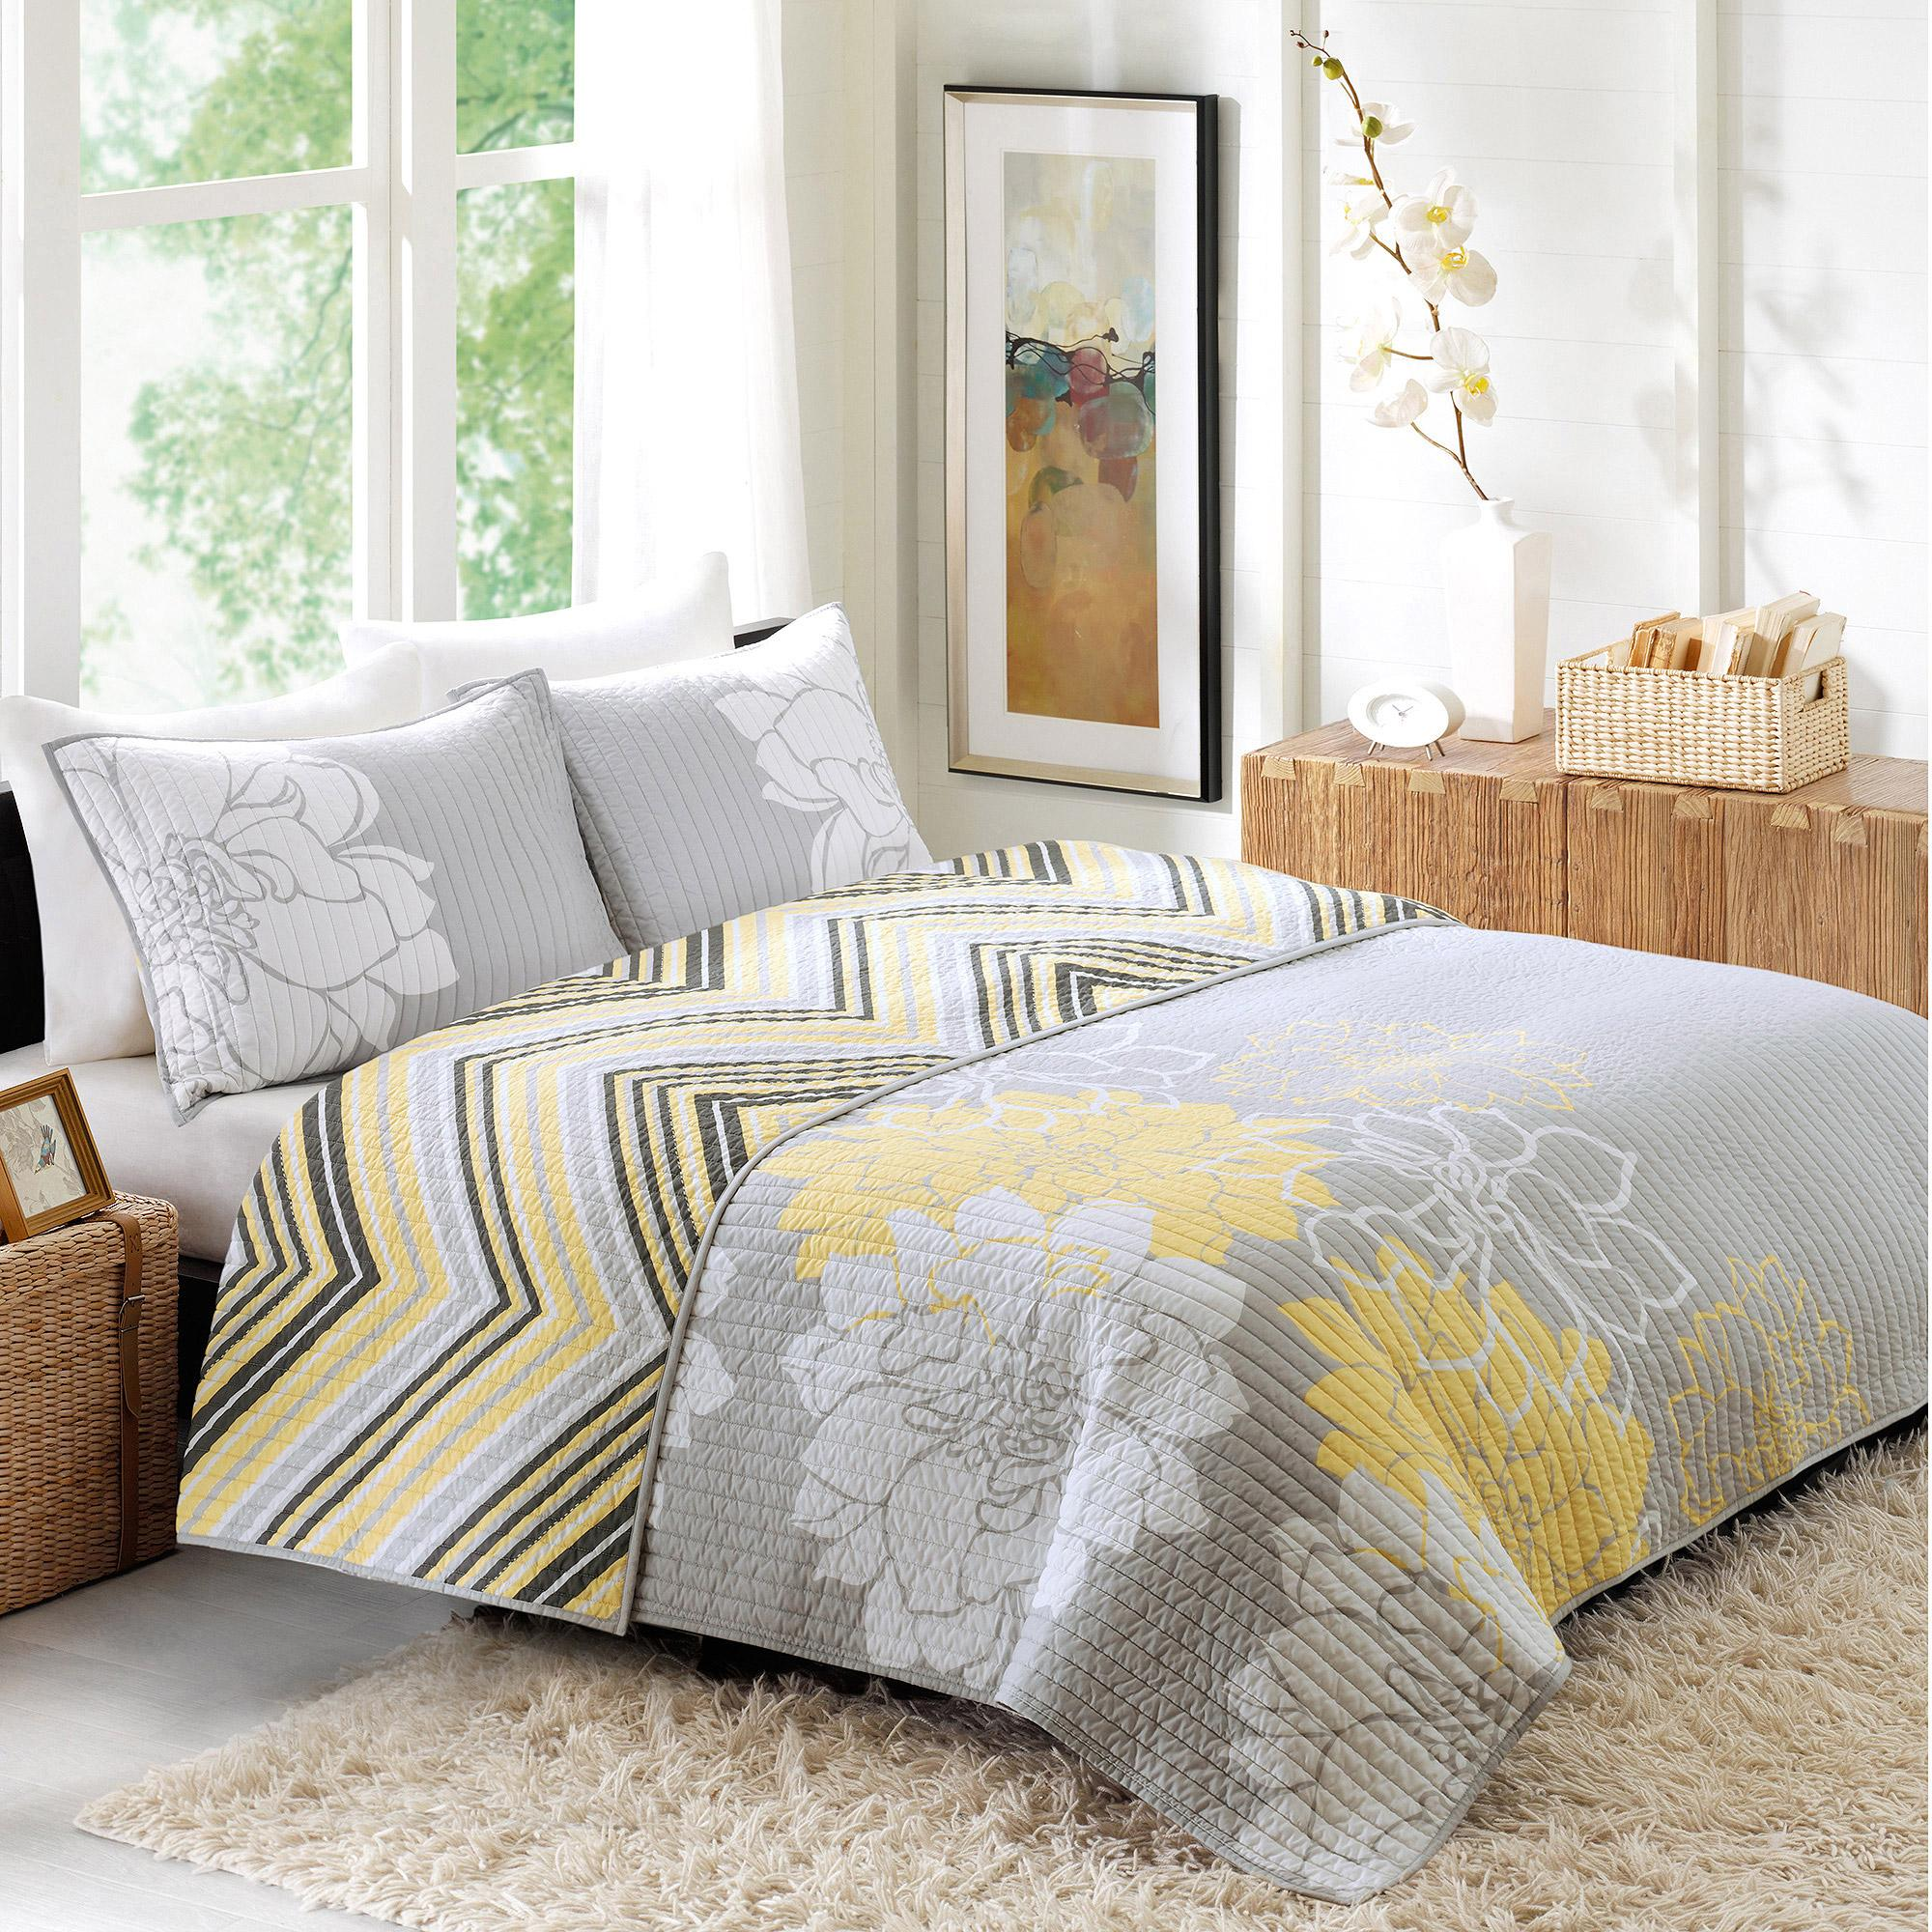 Better homes and gardens bedding walmartcom on sale now for Home designs comforter